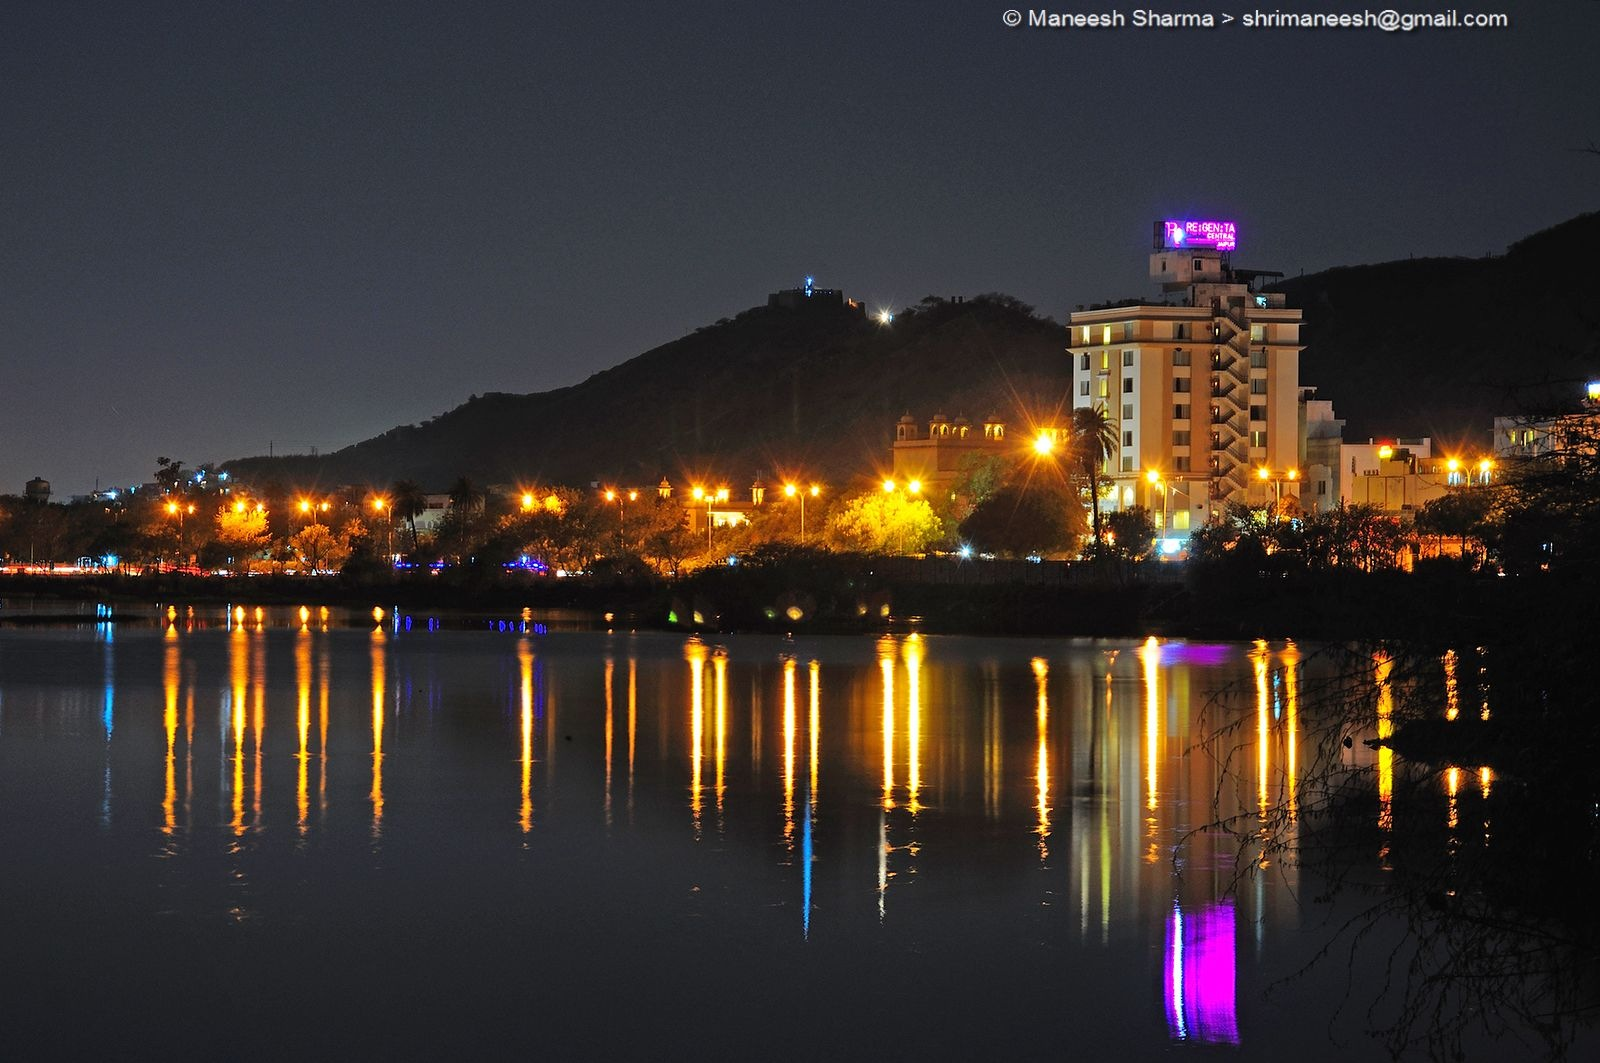 road lights reflect into Man sagar lake, Jaipur, India by Maneesh Sharma